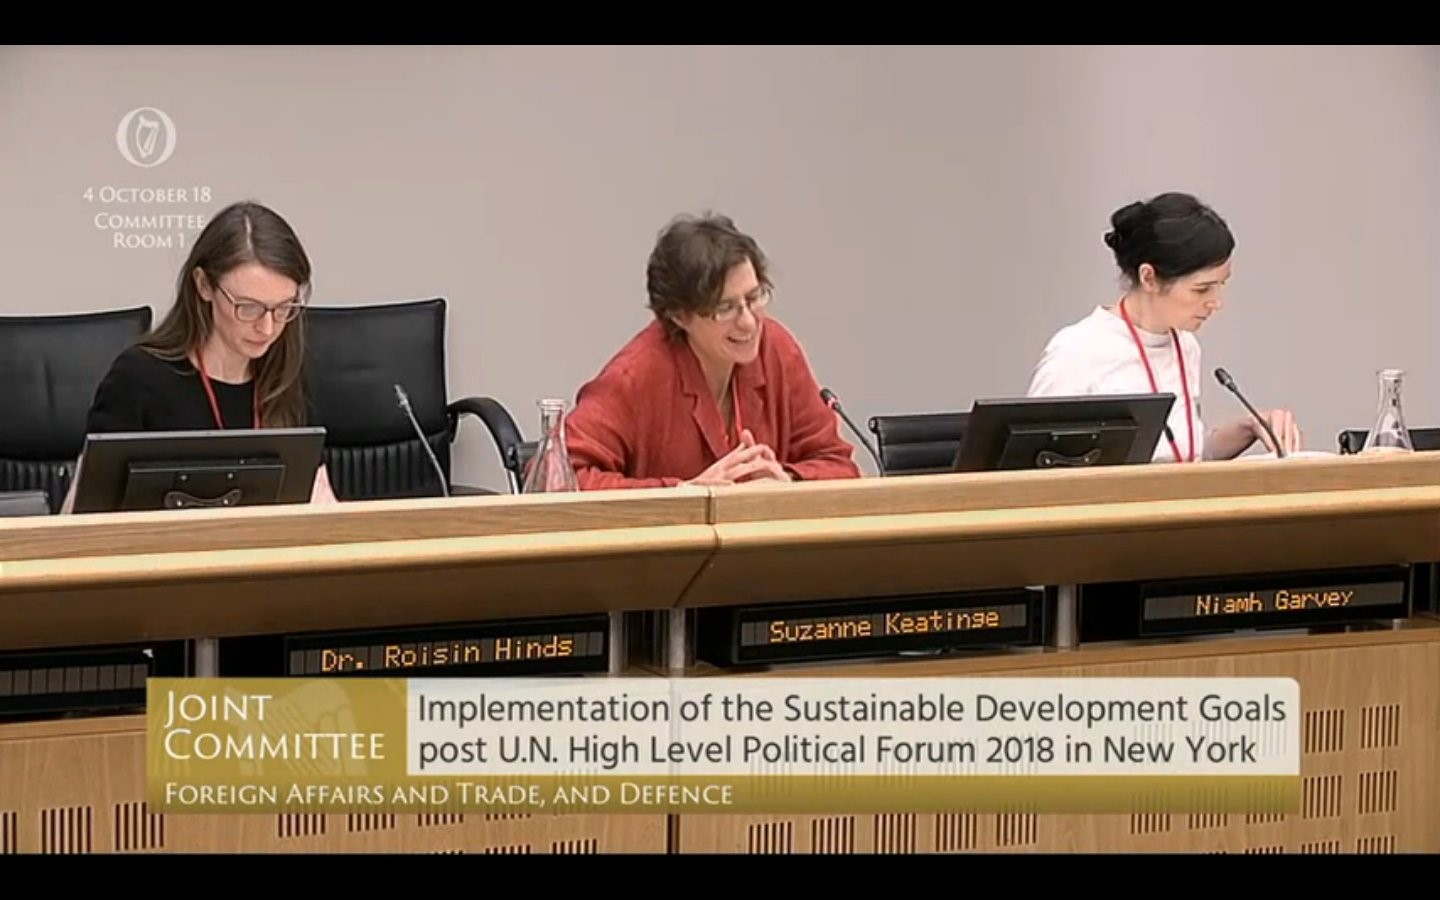 Róisín Hinds of Oxfam Ireland appearing before Joint Oireachtas Committee on Foreign Affairs and Trade with Suzanne Keatinge of Dóchas and Trócaire's Niamh Garvey. Photo: Oireachtas TV